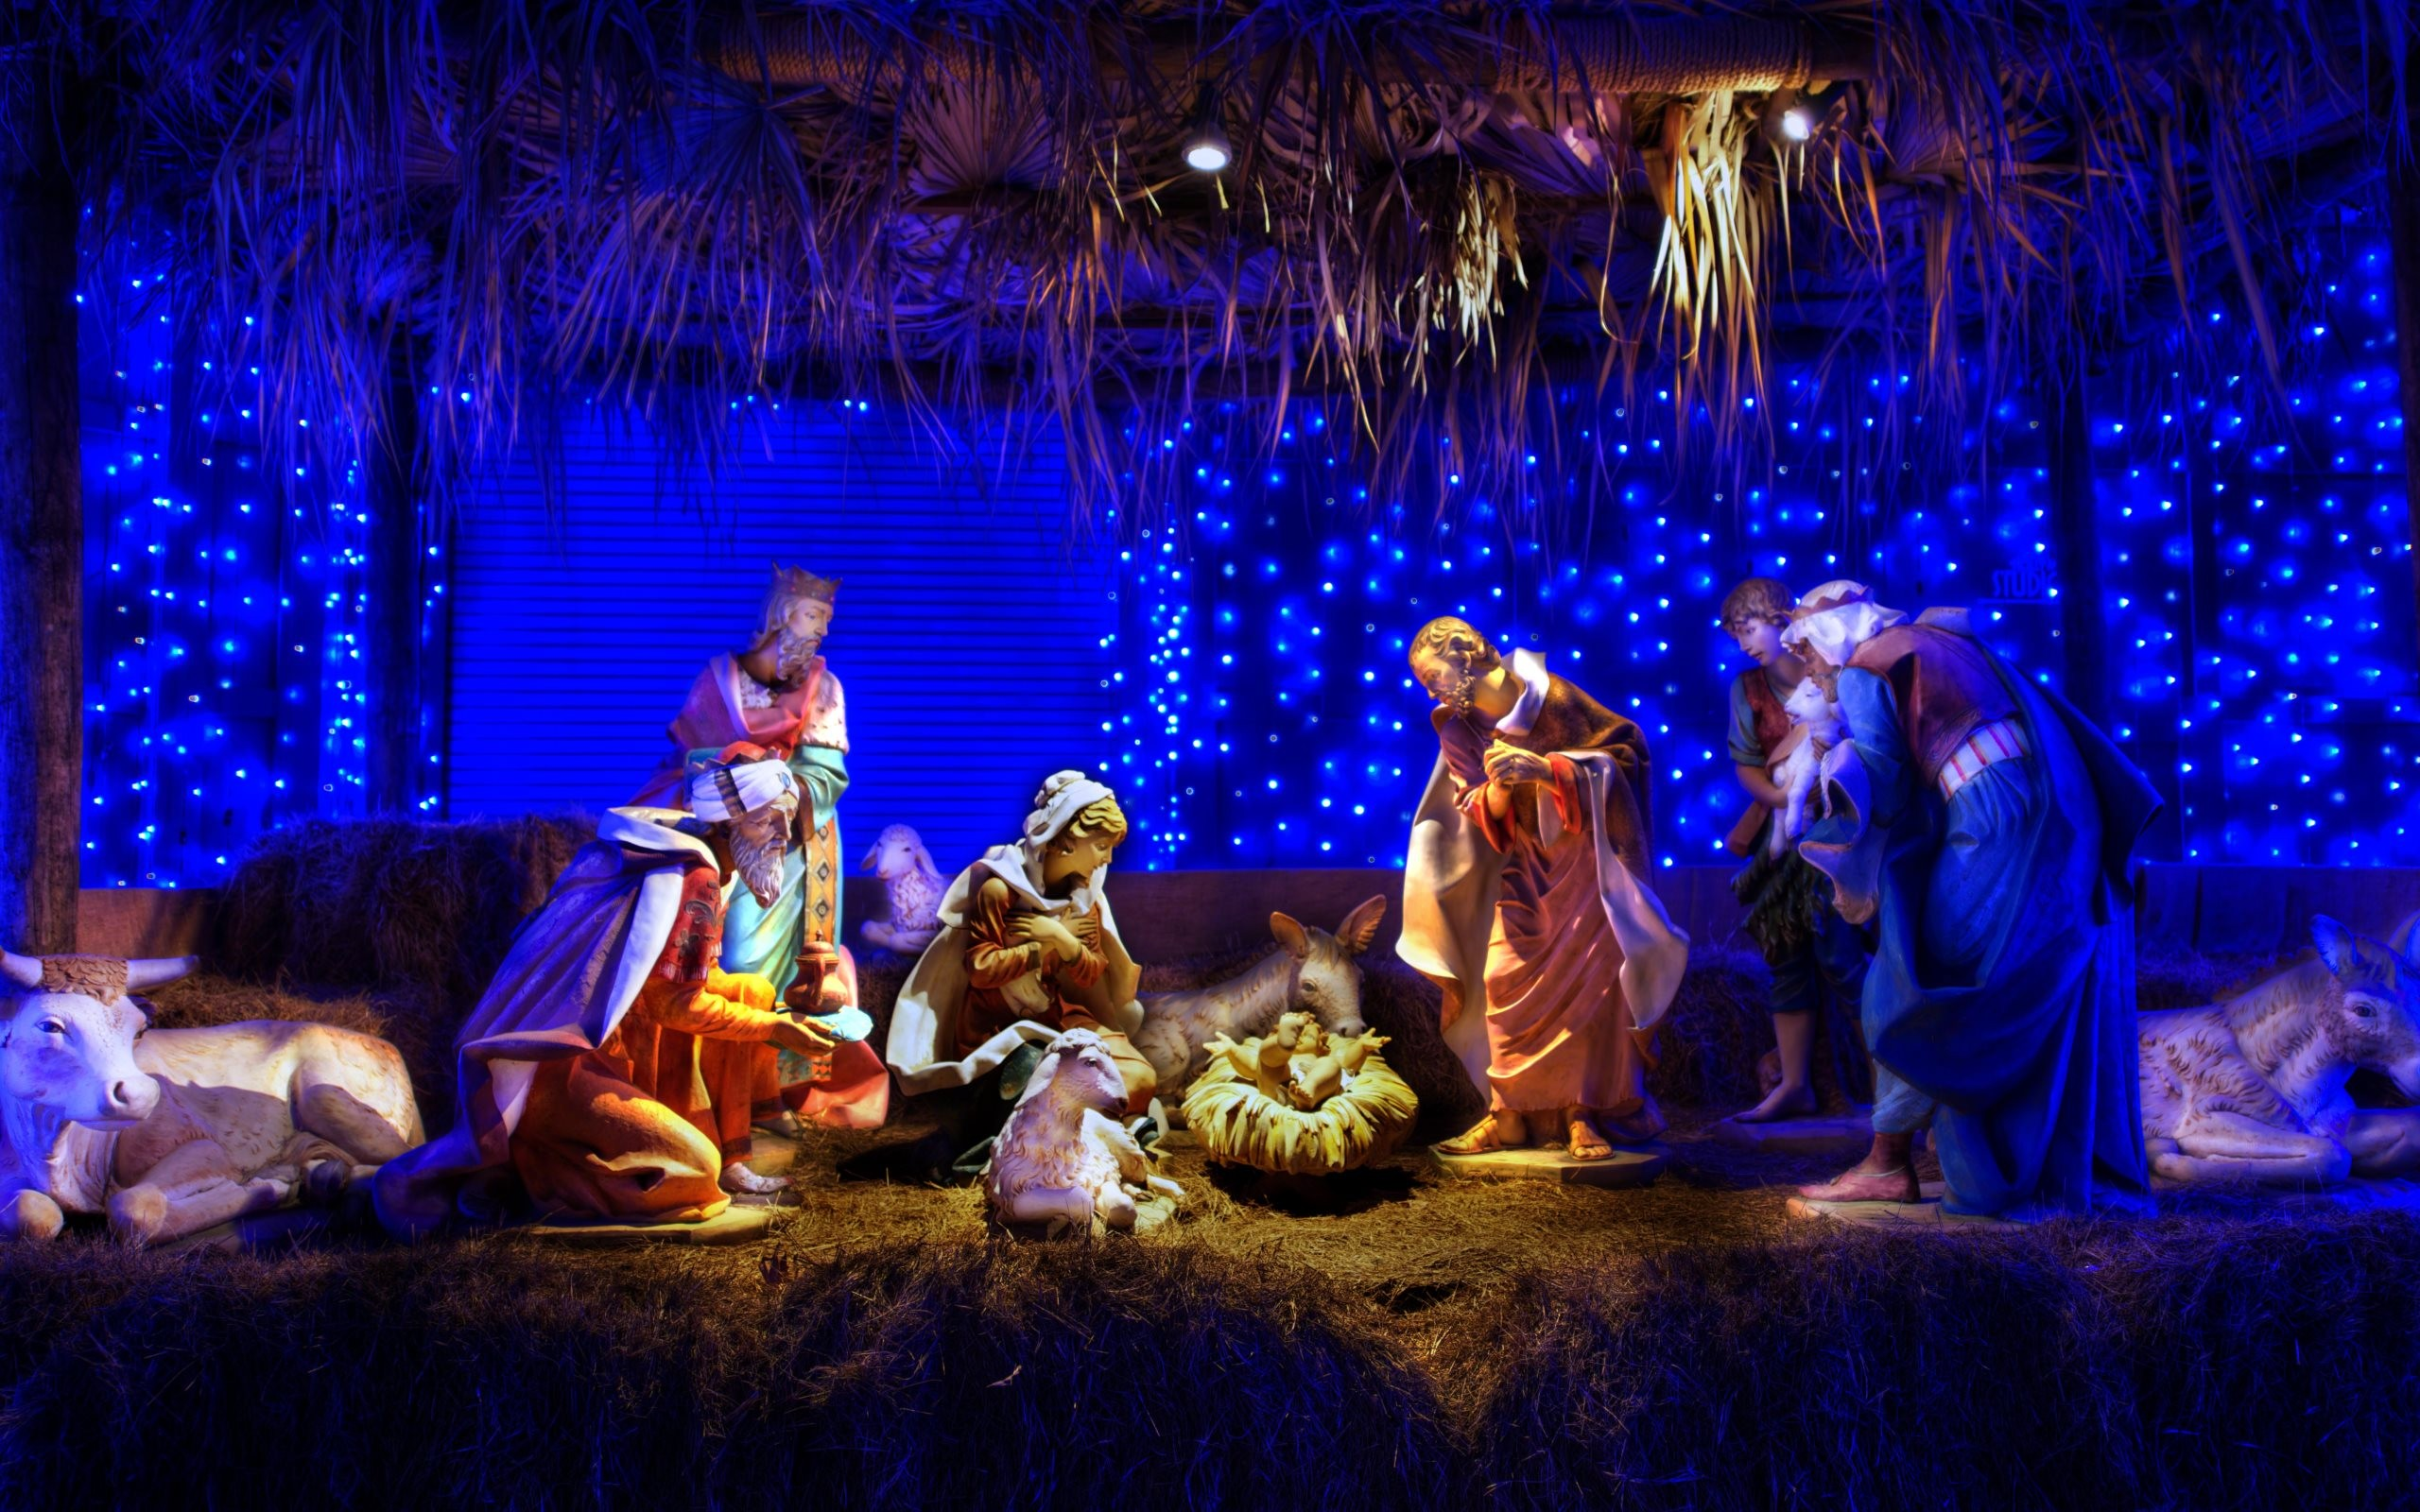 Christmas nativity scene wallpaper download free hd - Pretty christmas pictures ...